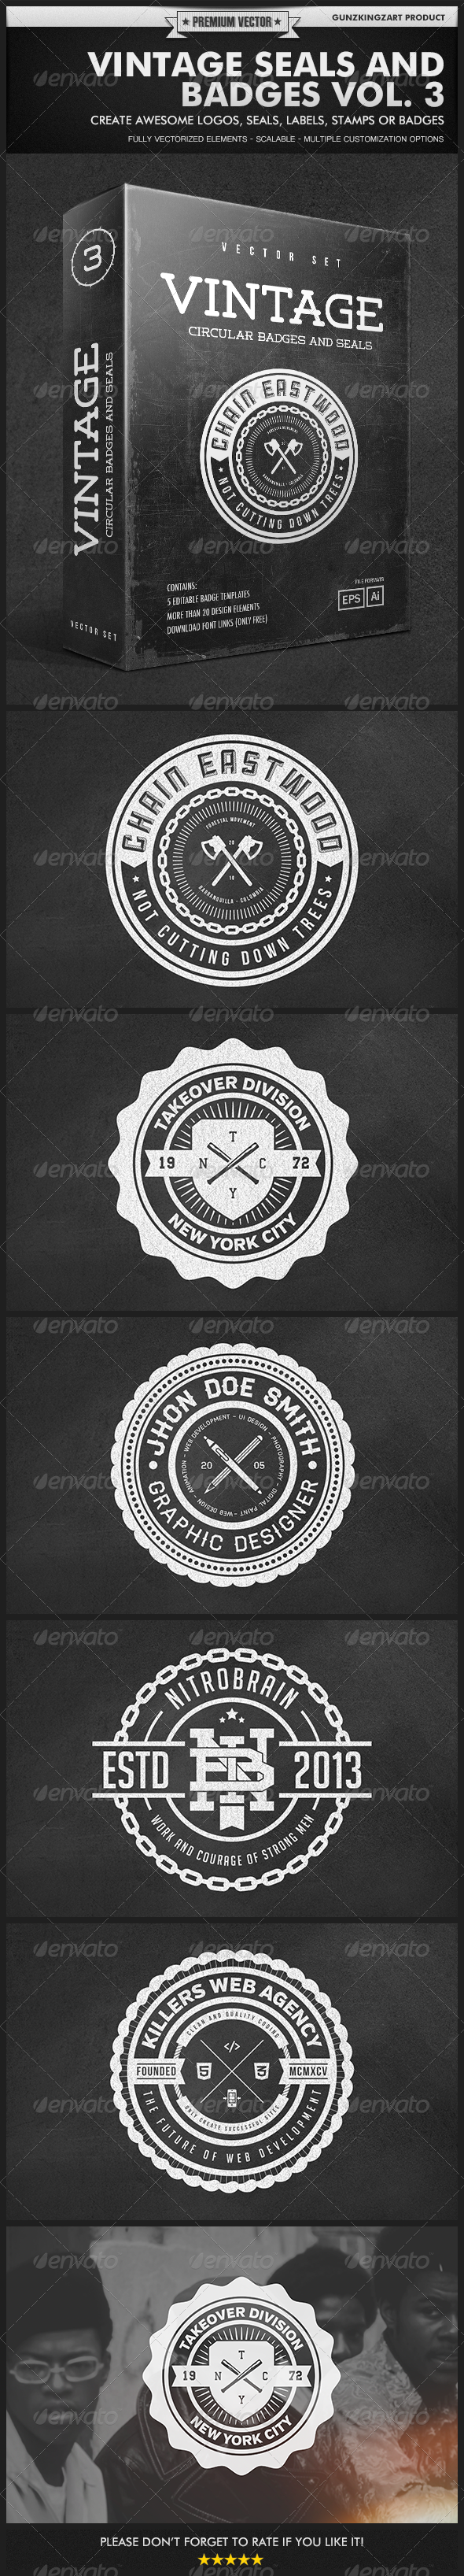 GraphicRiver Vintage Seals and Badges Vol 3 5243418